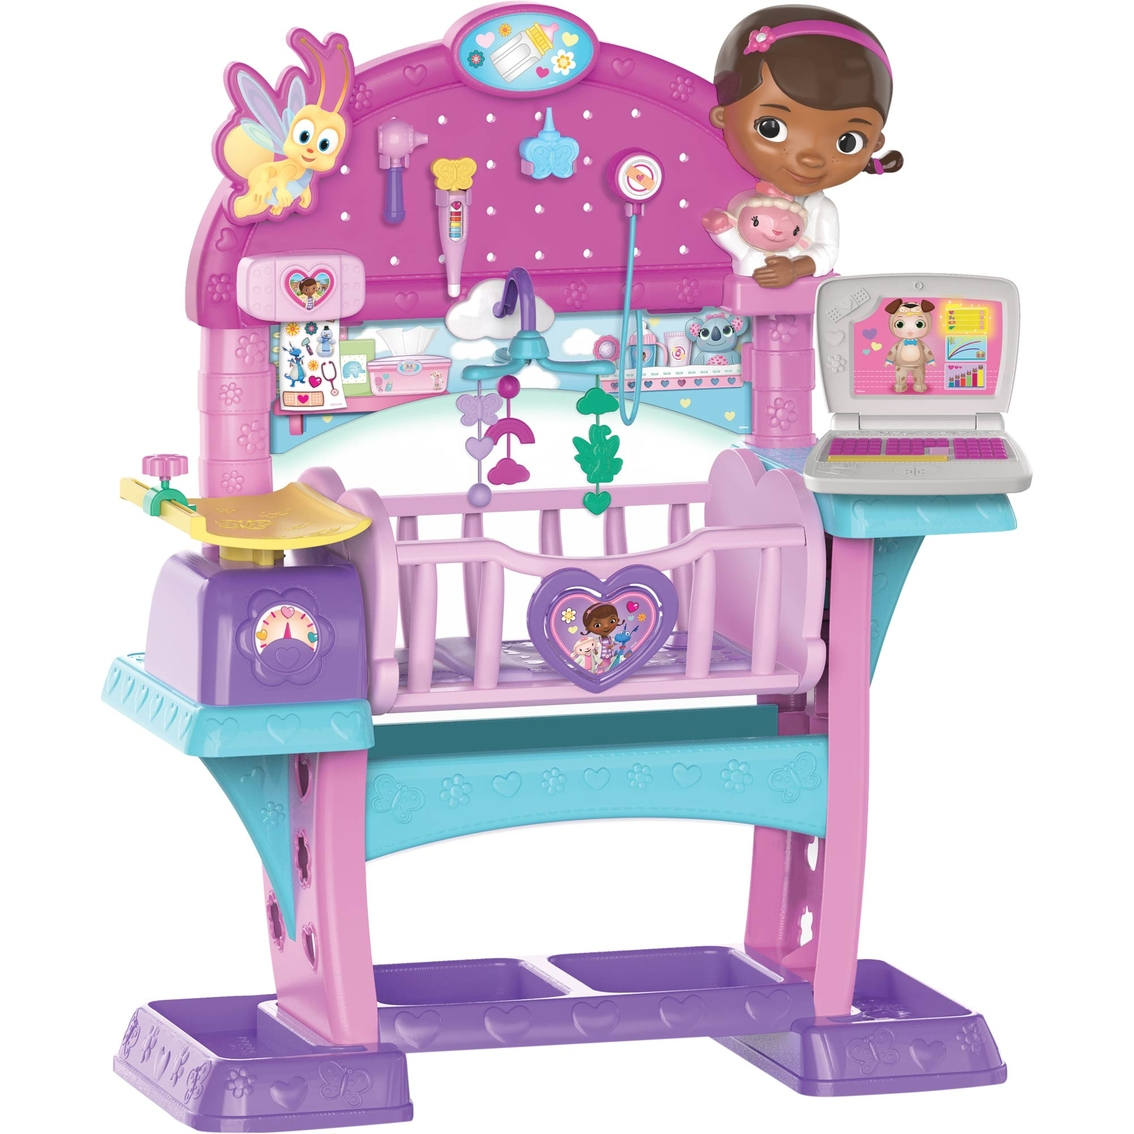 Disney Junior S Doc Mcstuffins Baby All In One Nursery